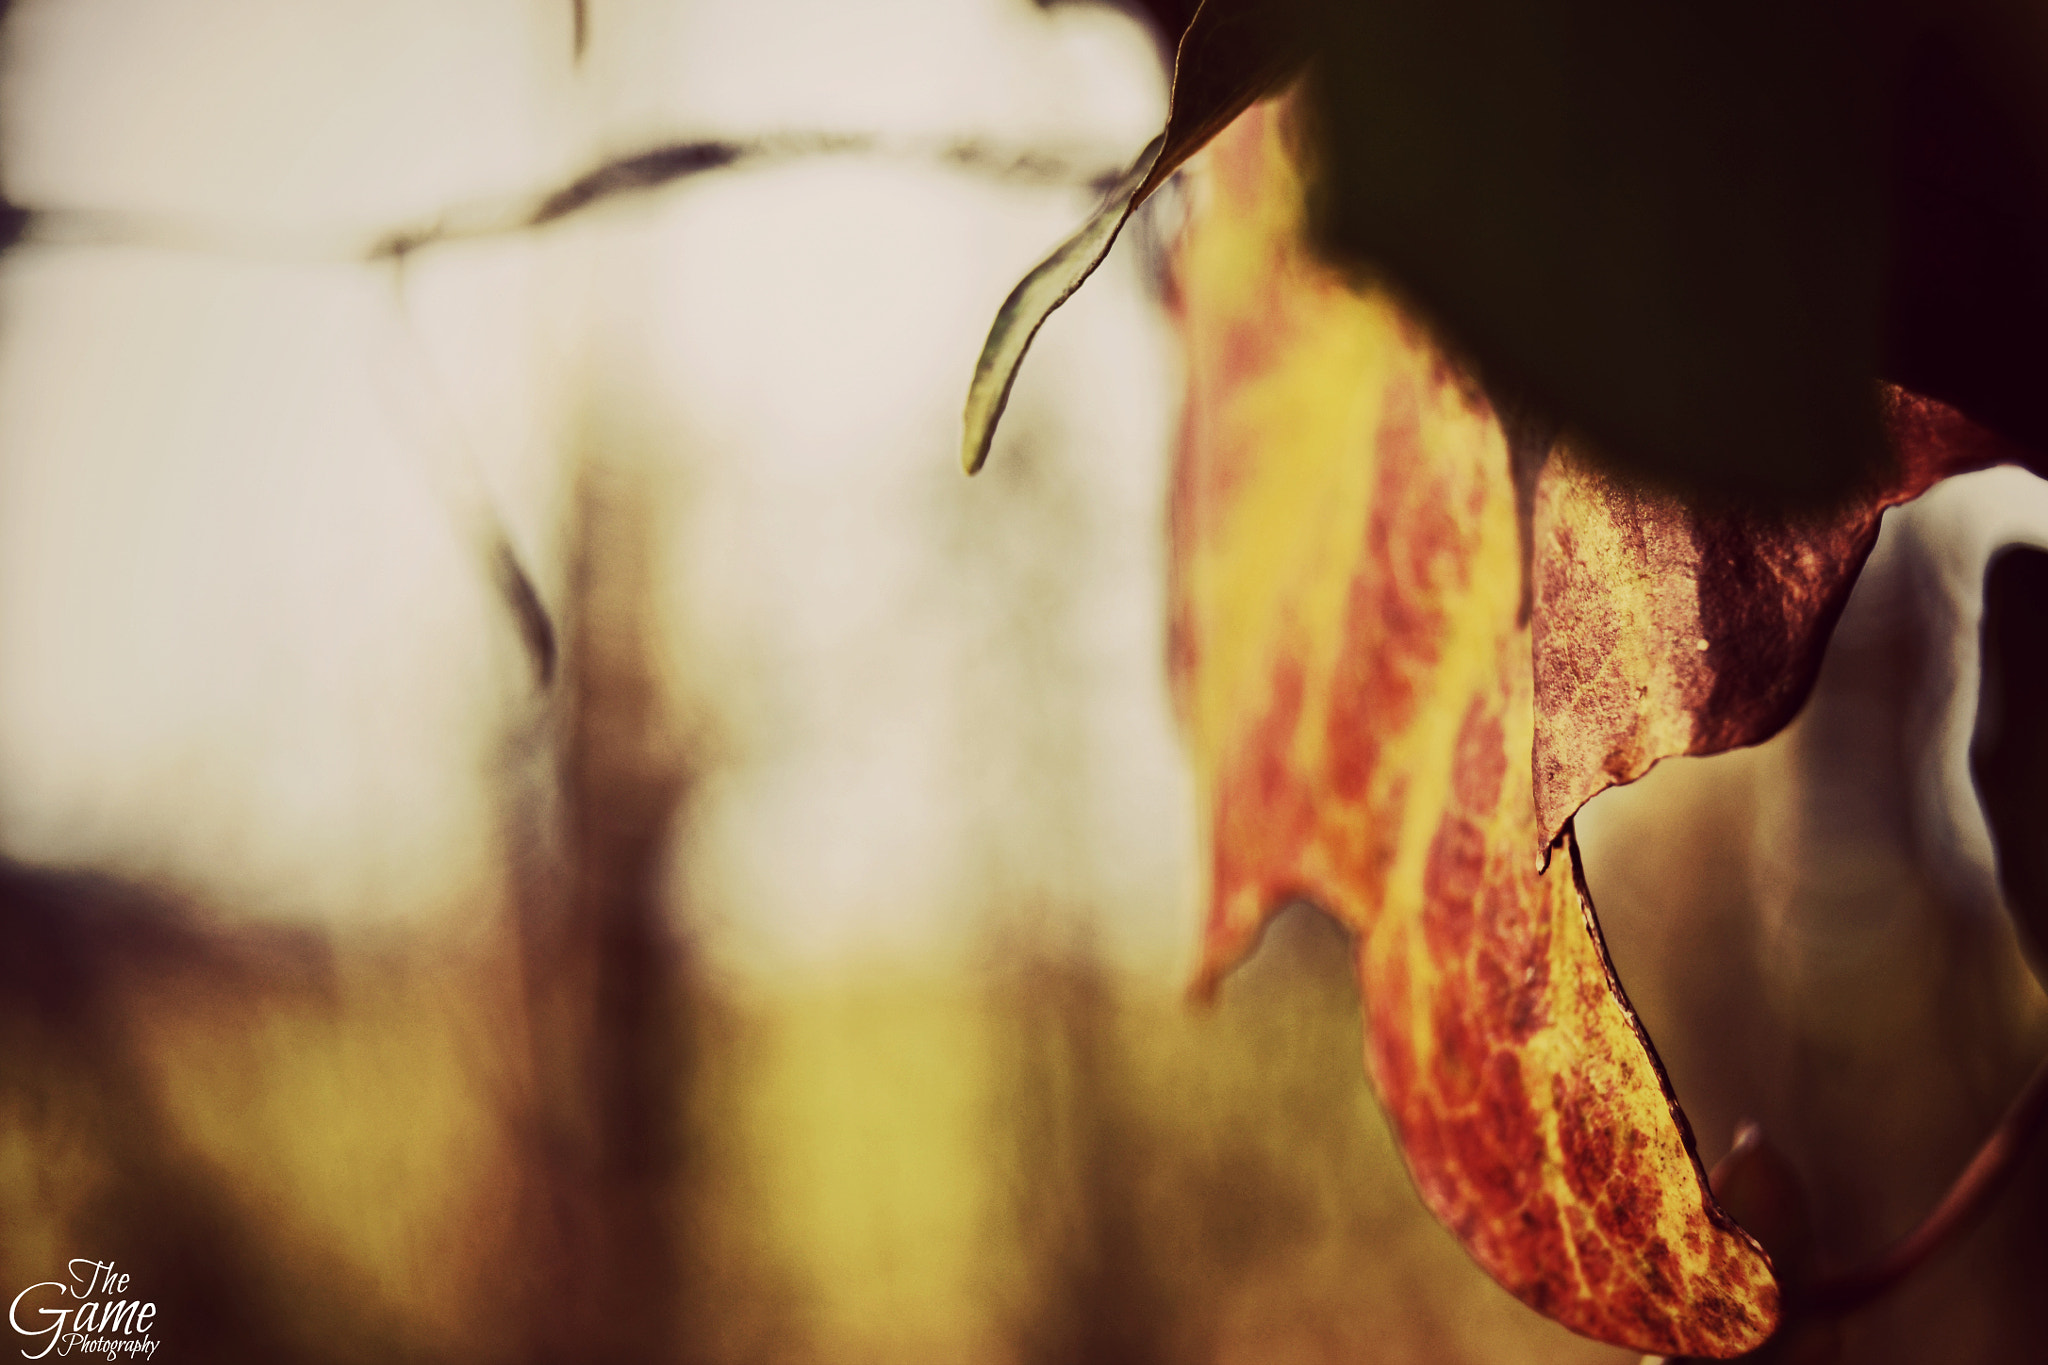 Photograph Les Feuilles Mortes I by The Game Photography on 500px